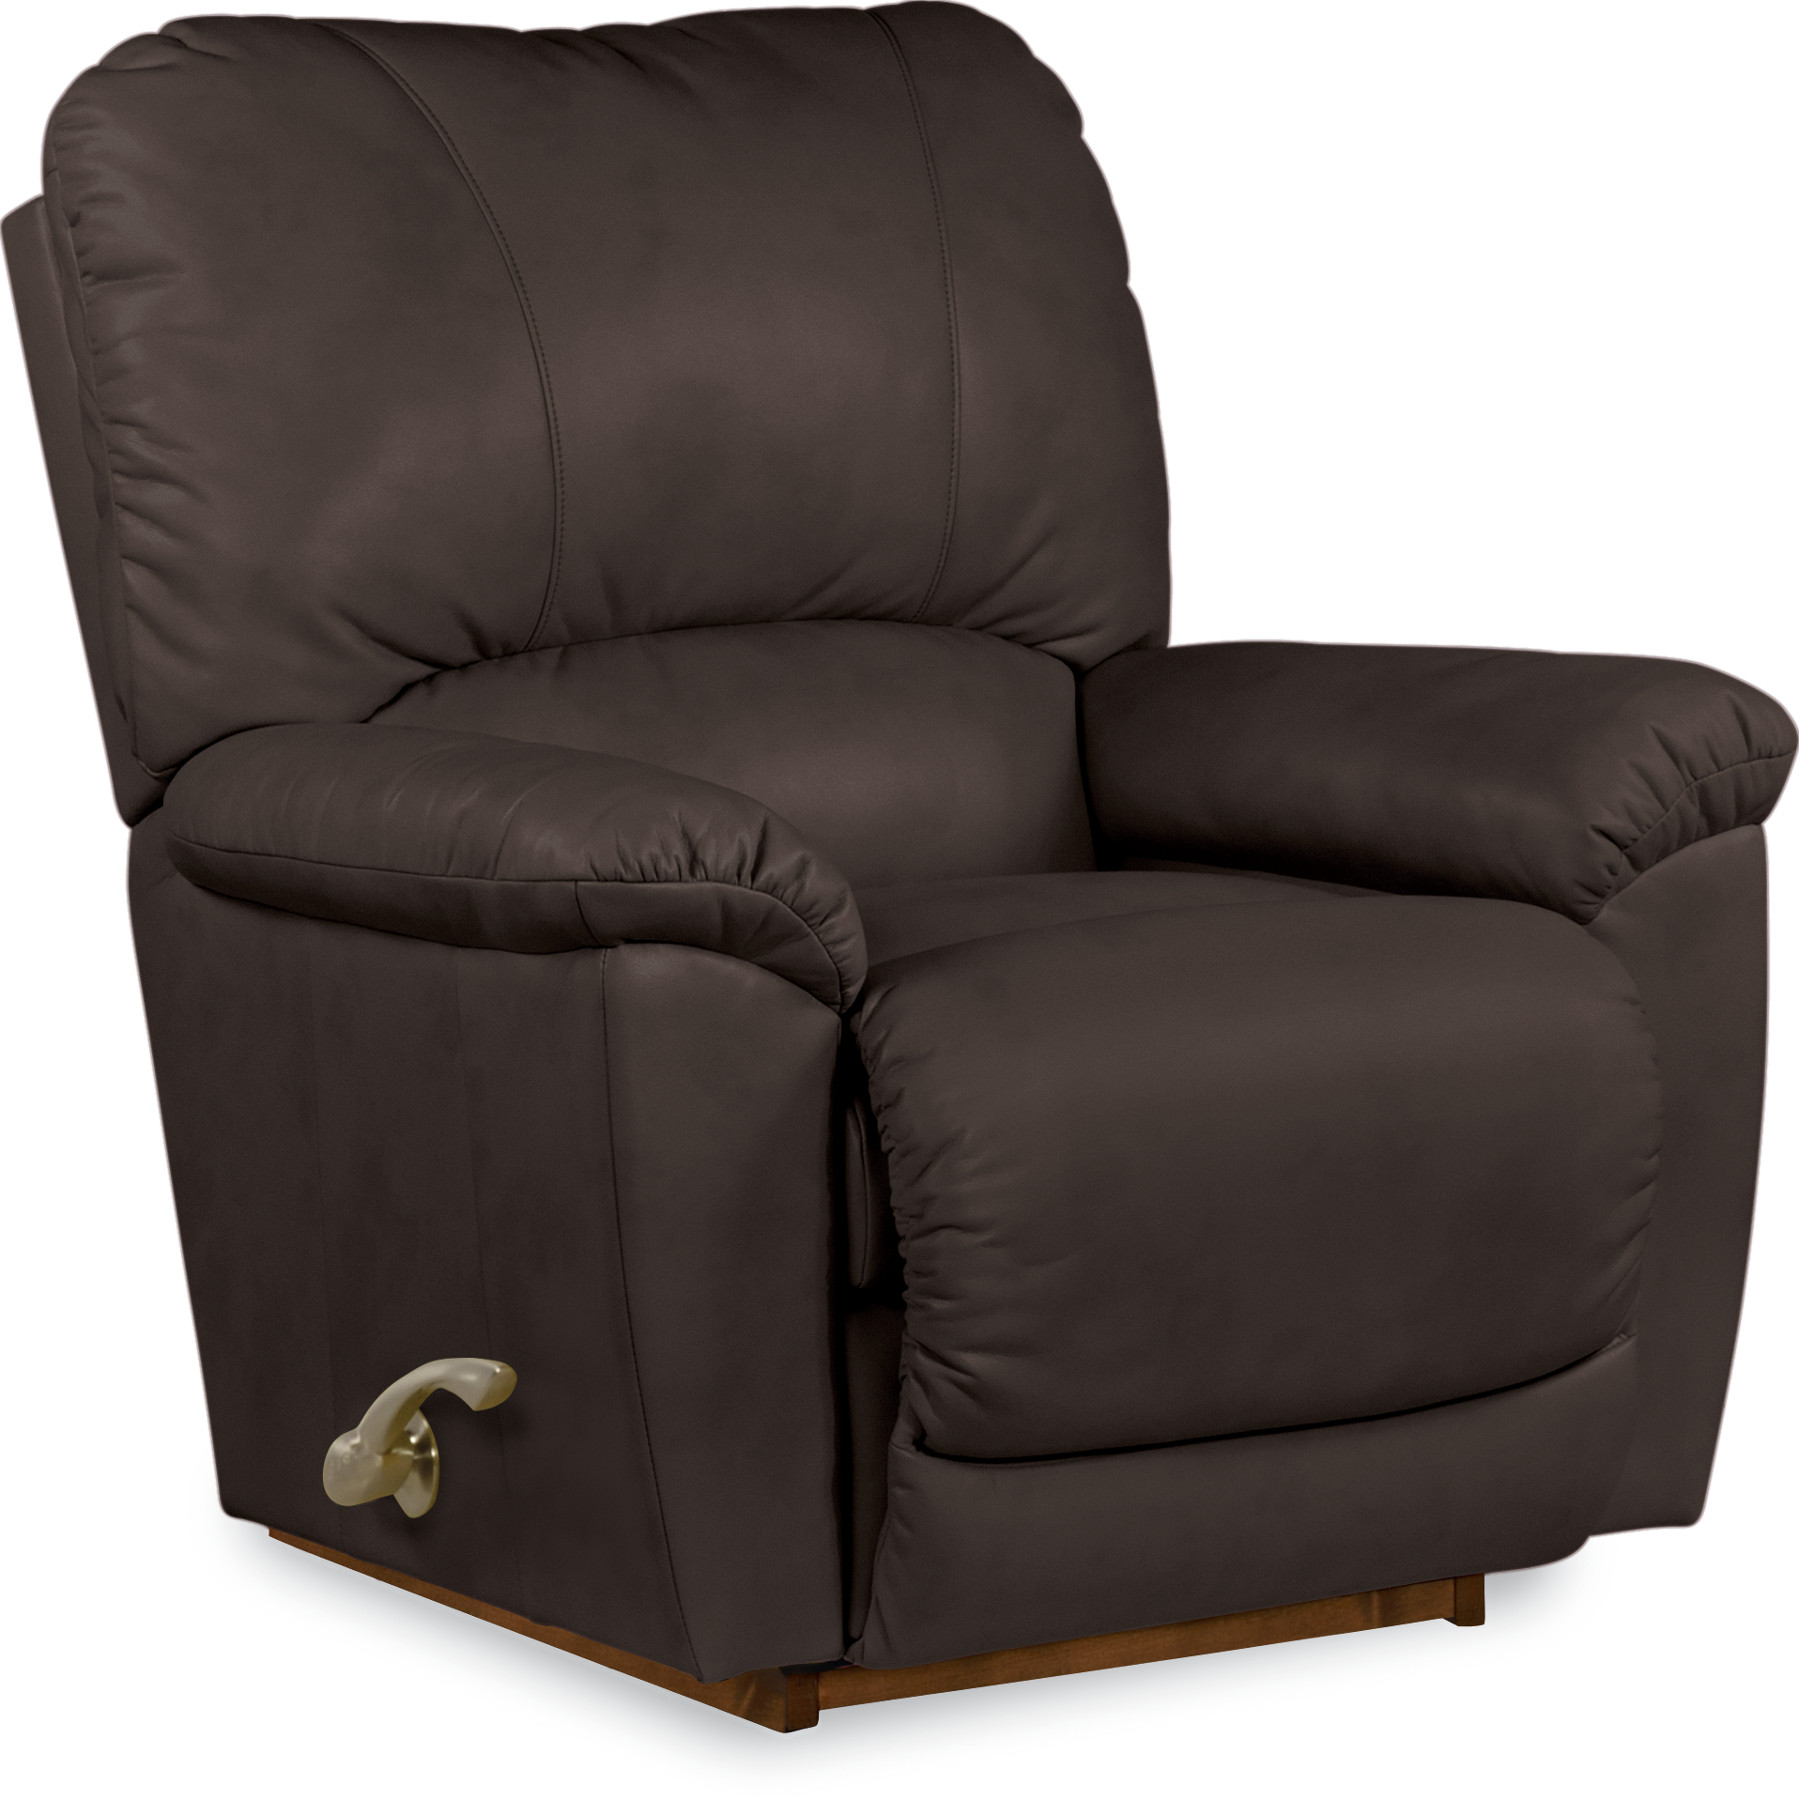 Recliner Rocking Chair La Z Boy Tyler Rocker Recliner Mahogany Shop Your Way